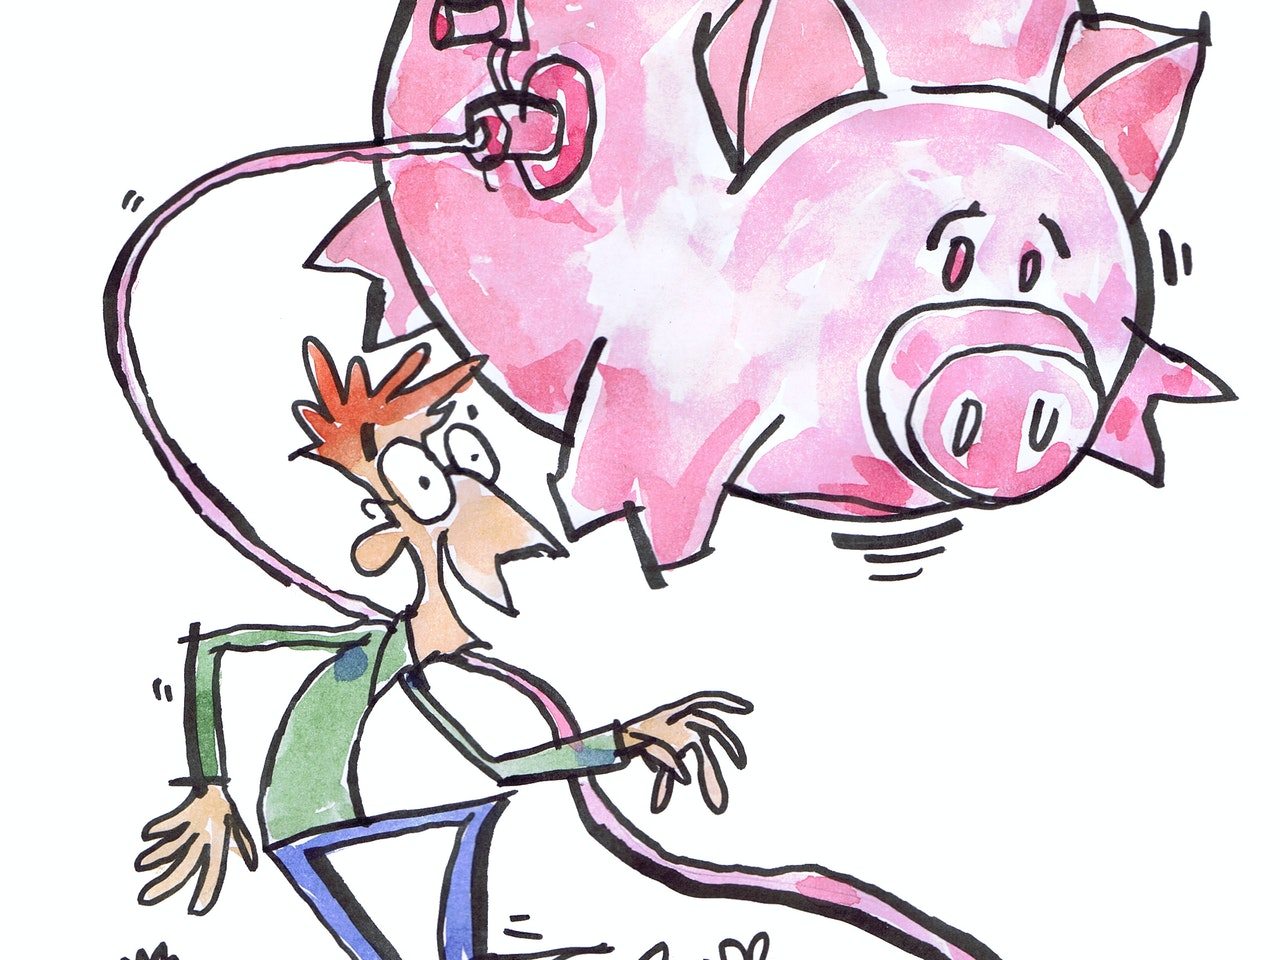 finances money banking savings account inflation funny watercolour painting pen and ink coloured pencil Book cover childrens illustration animation funny  humorous comical colourful graphic novel comic strip cartoon comic book educational publishing